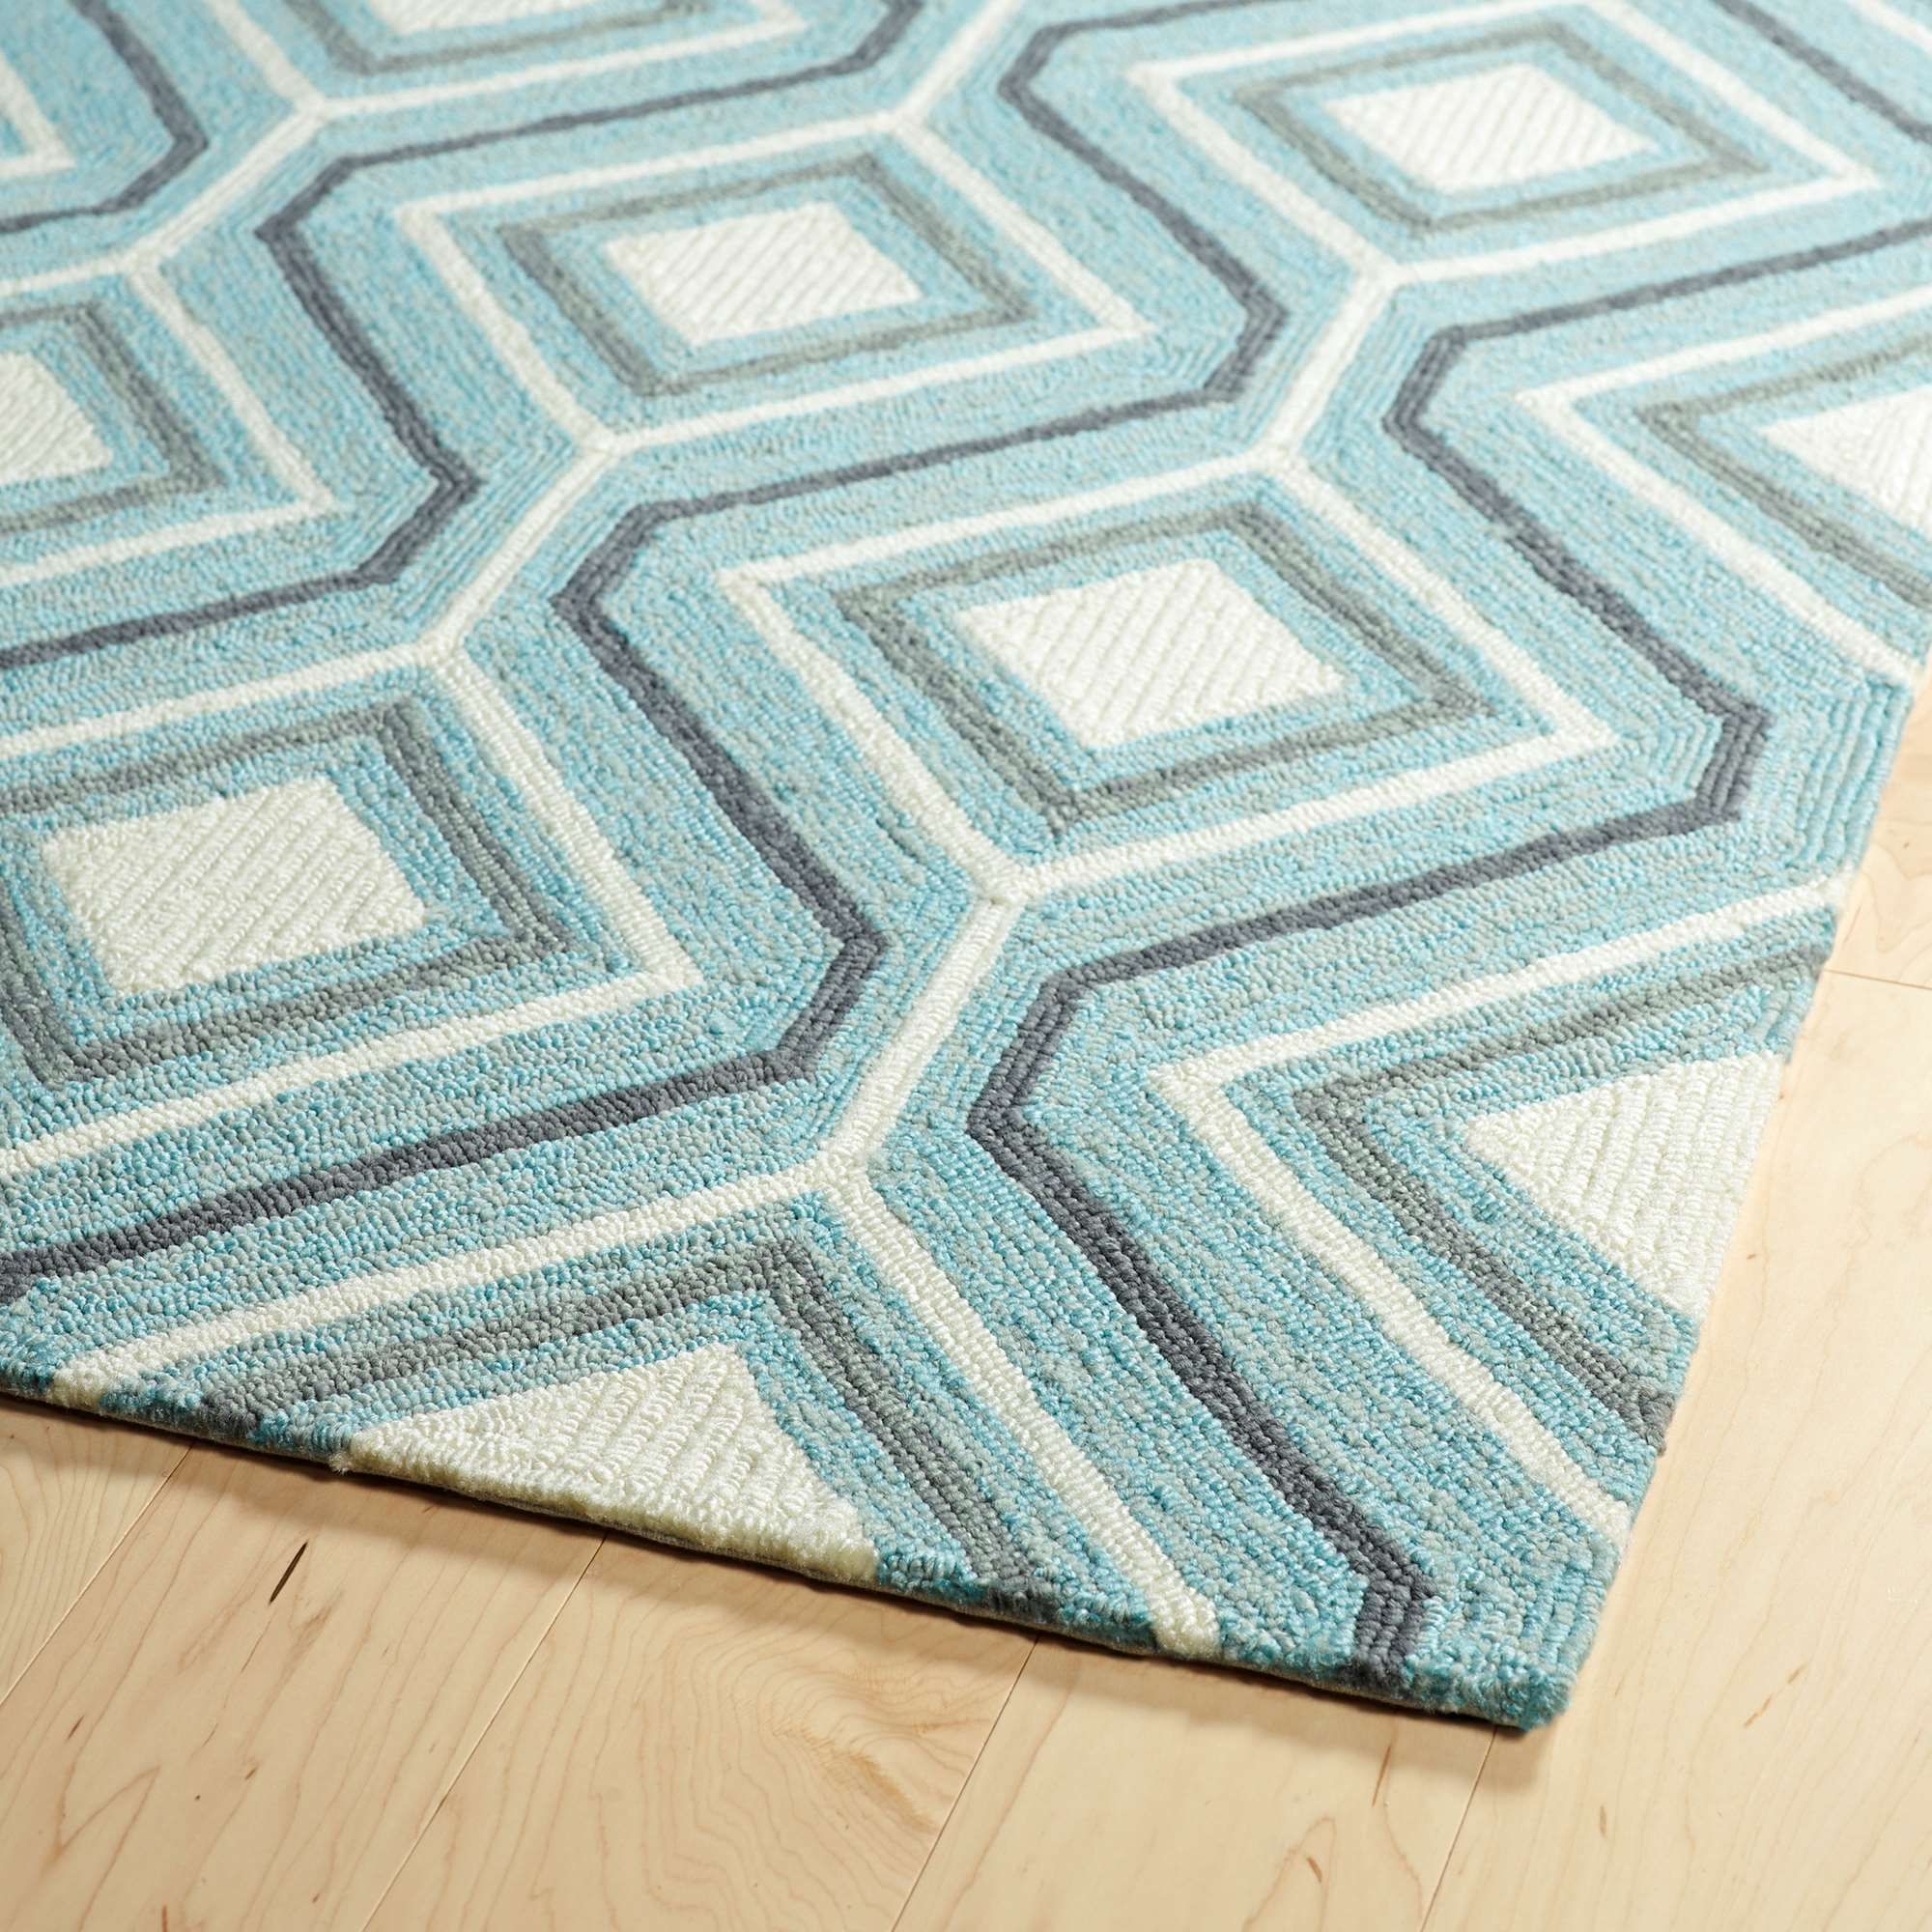 Rugs Usa Area Rugs In Many Styles Including Contemporary Braided Outdoor And Outdoor Rugs Indoor Outdoor Rugs Kaleen